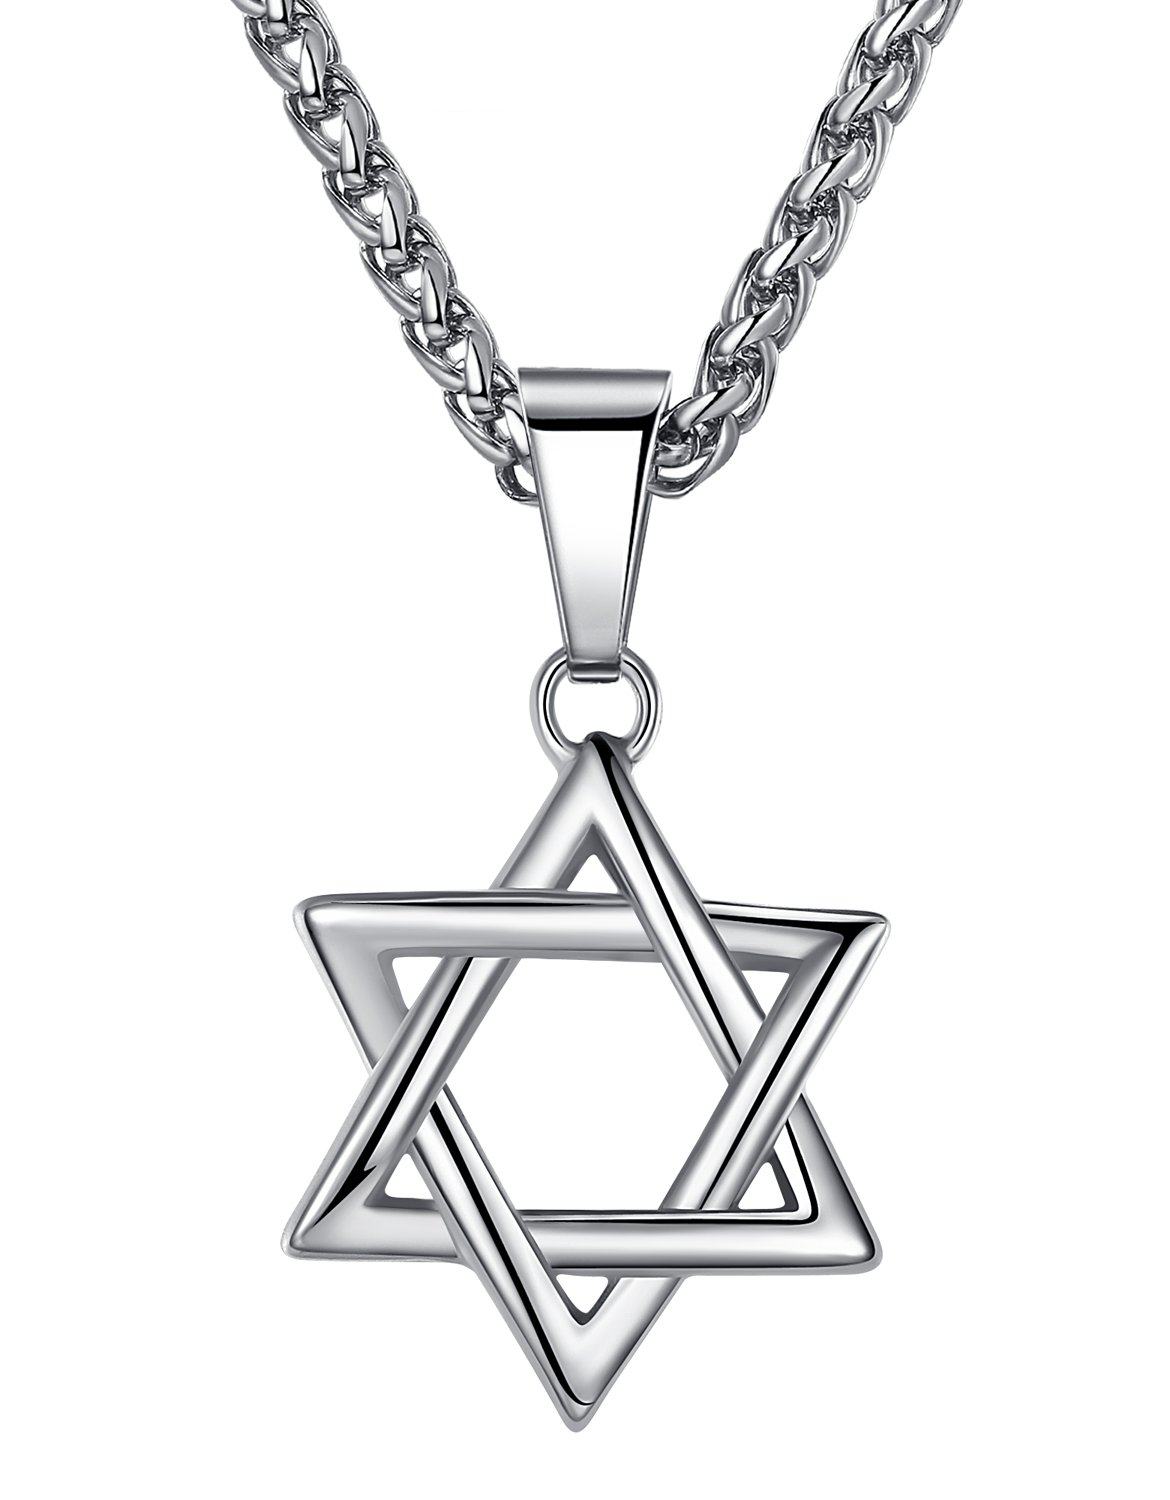 Aoiy Stainless Steel Star of David Pendant Necklace, Unisex, 24'' Link Chain, hhp010